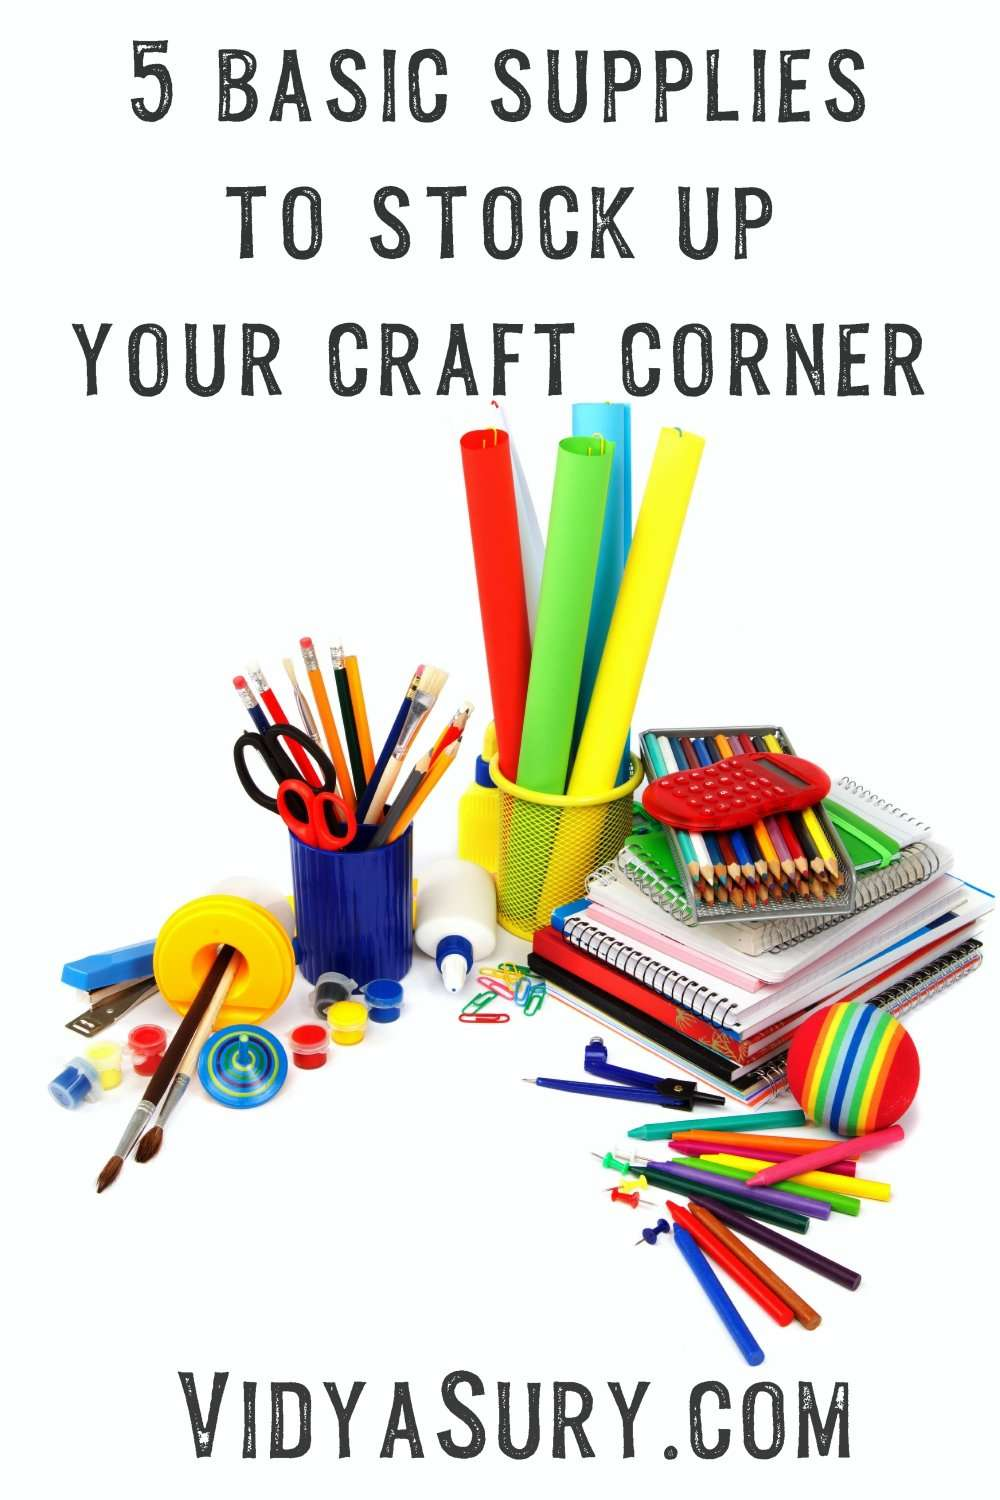 5 basic supplies you need for setting up your craft corner